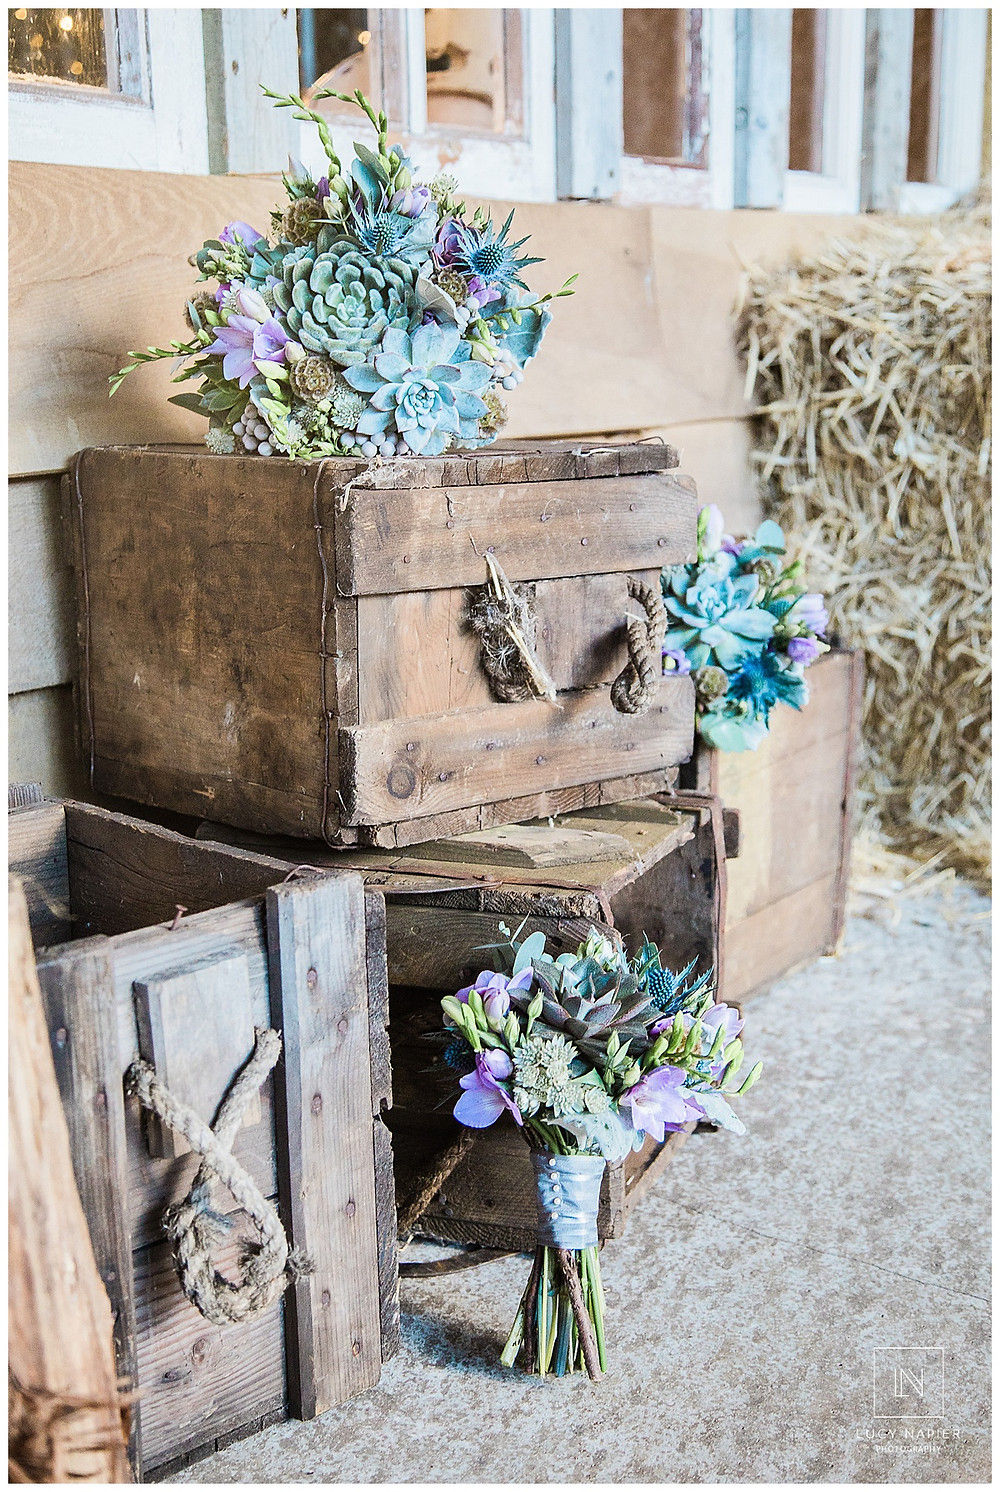 The wedding bouquets arranged on old crates